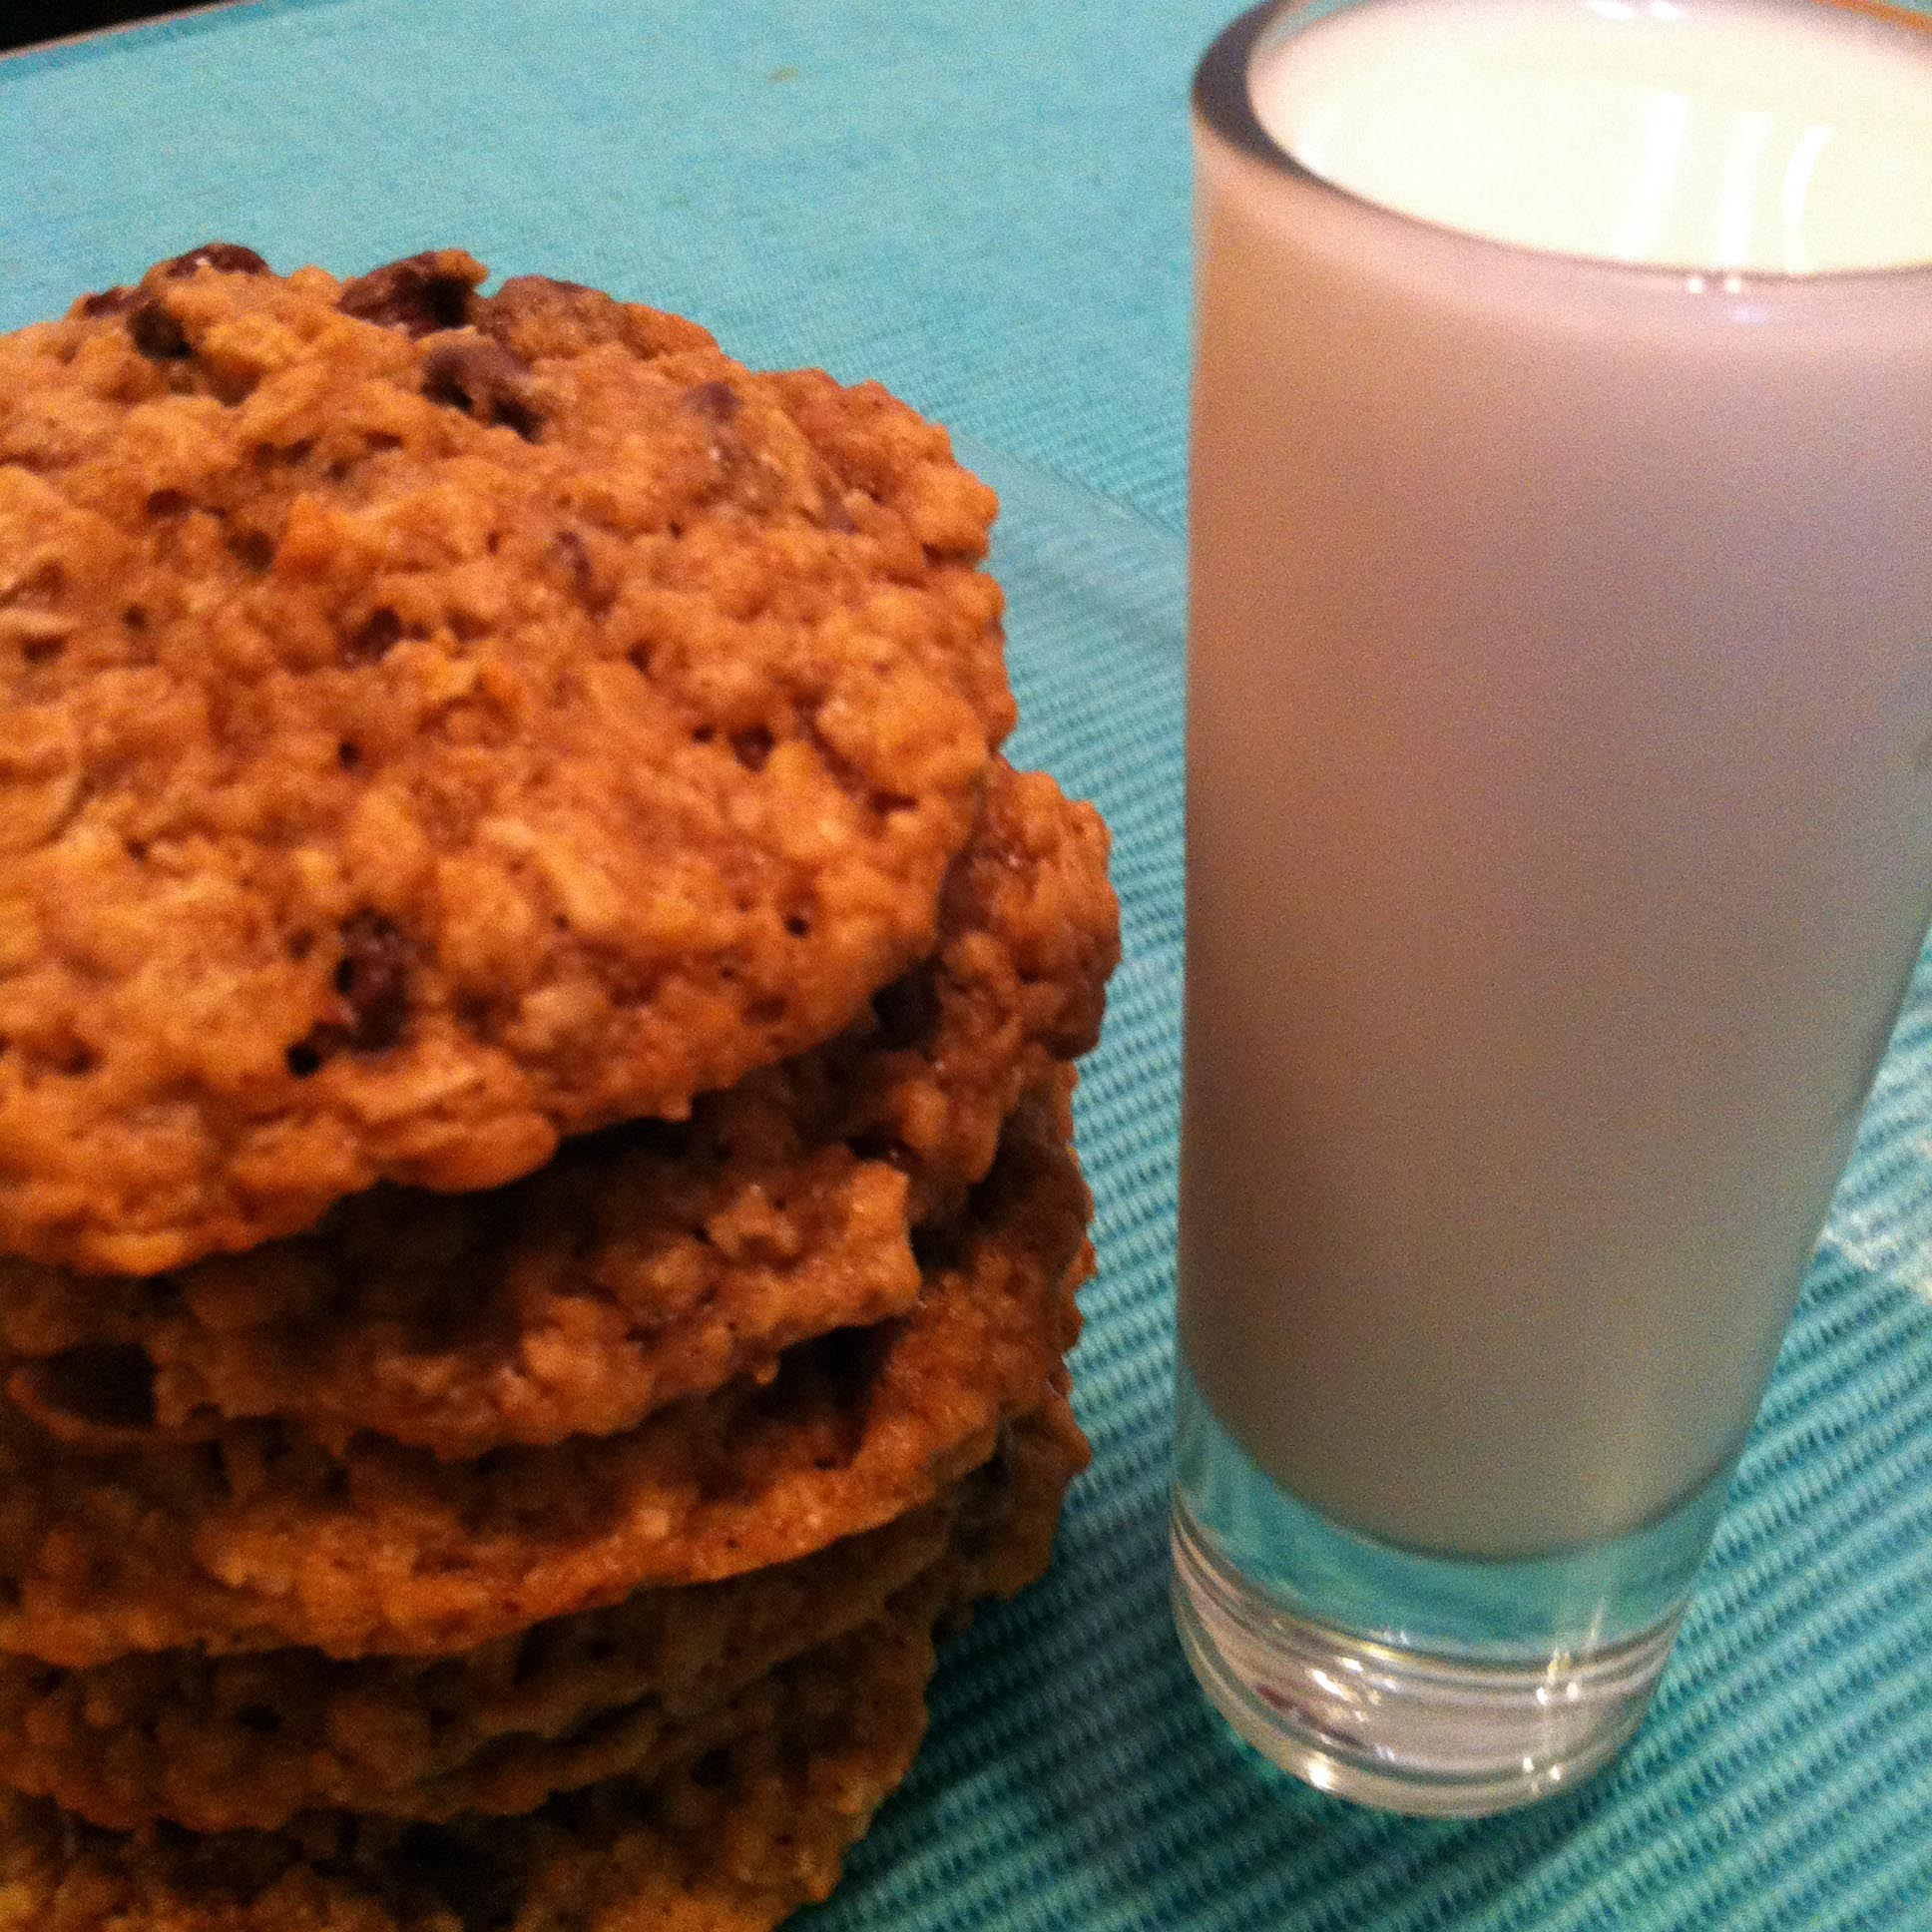 An Oatmeal Cookie 3-Way